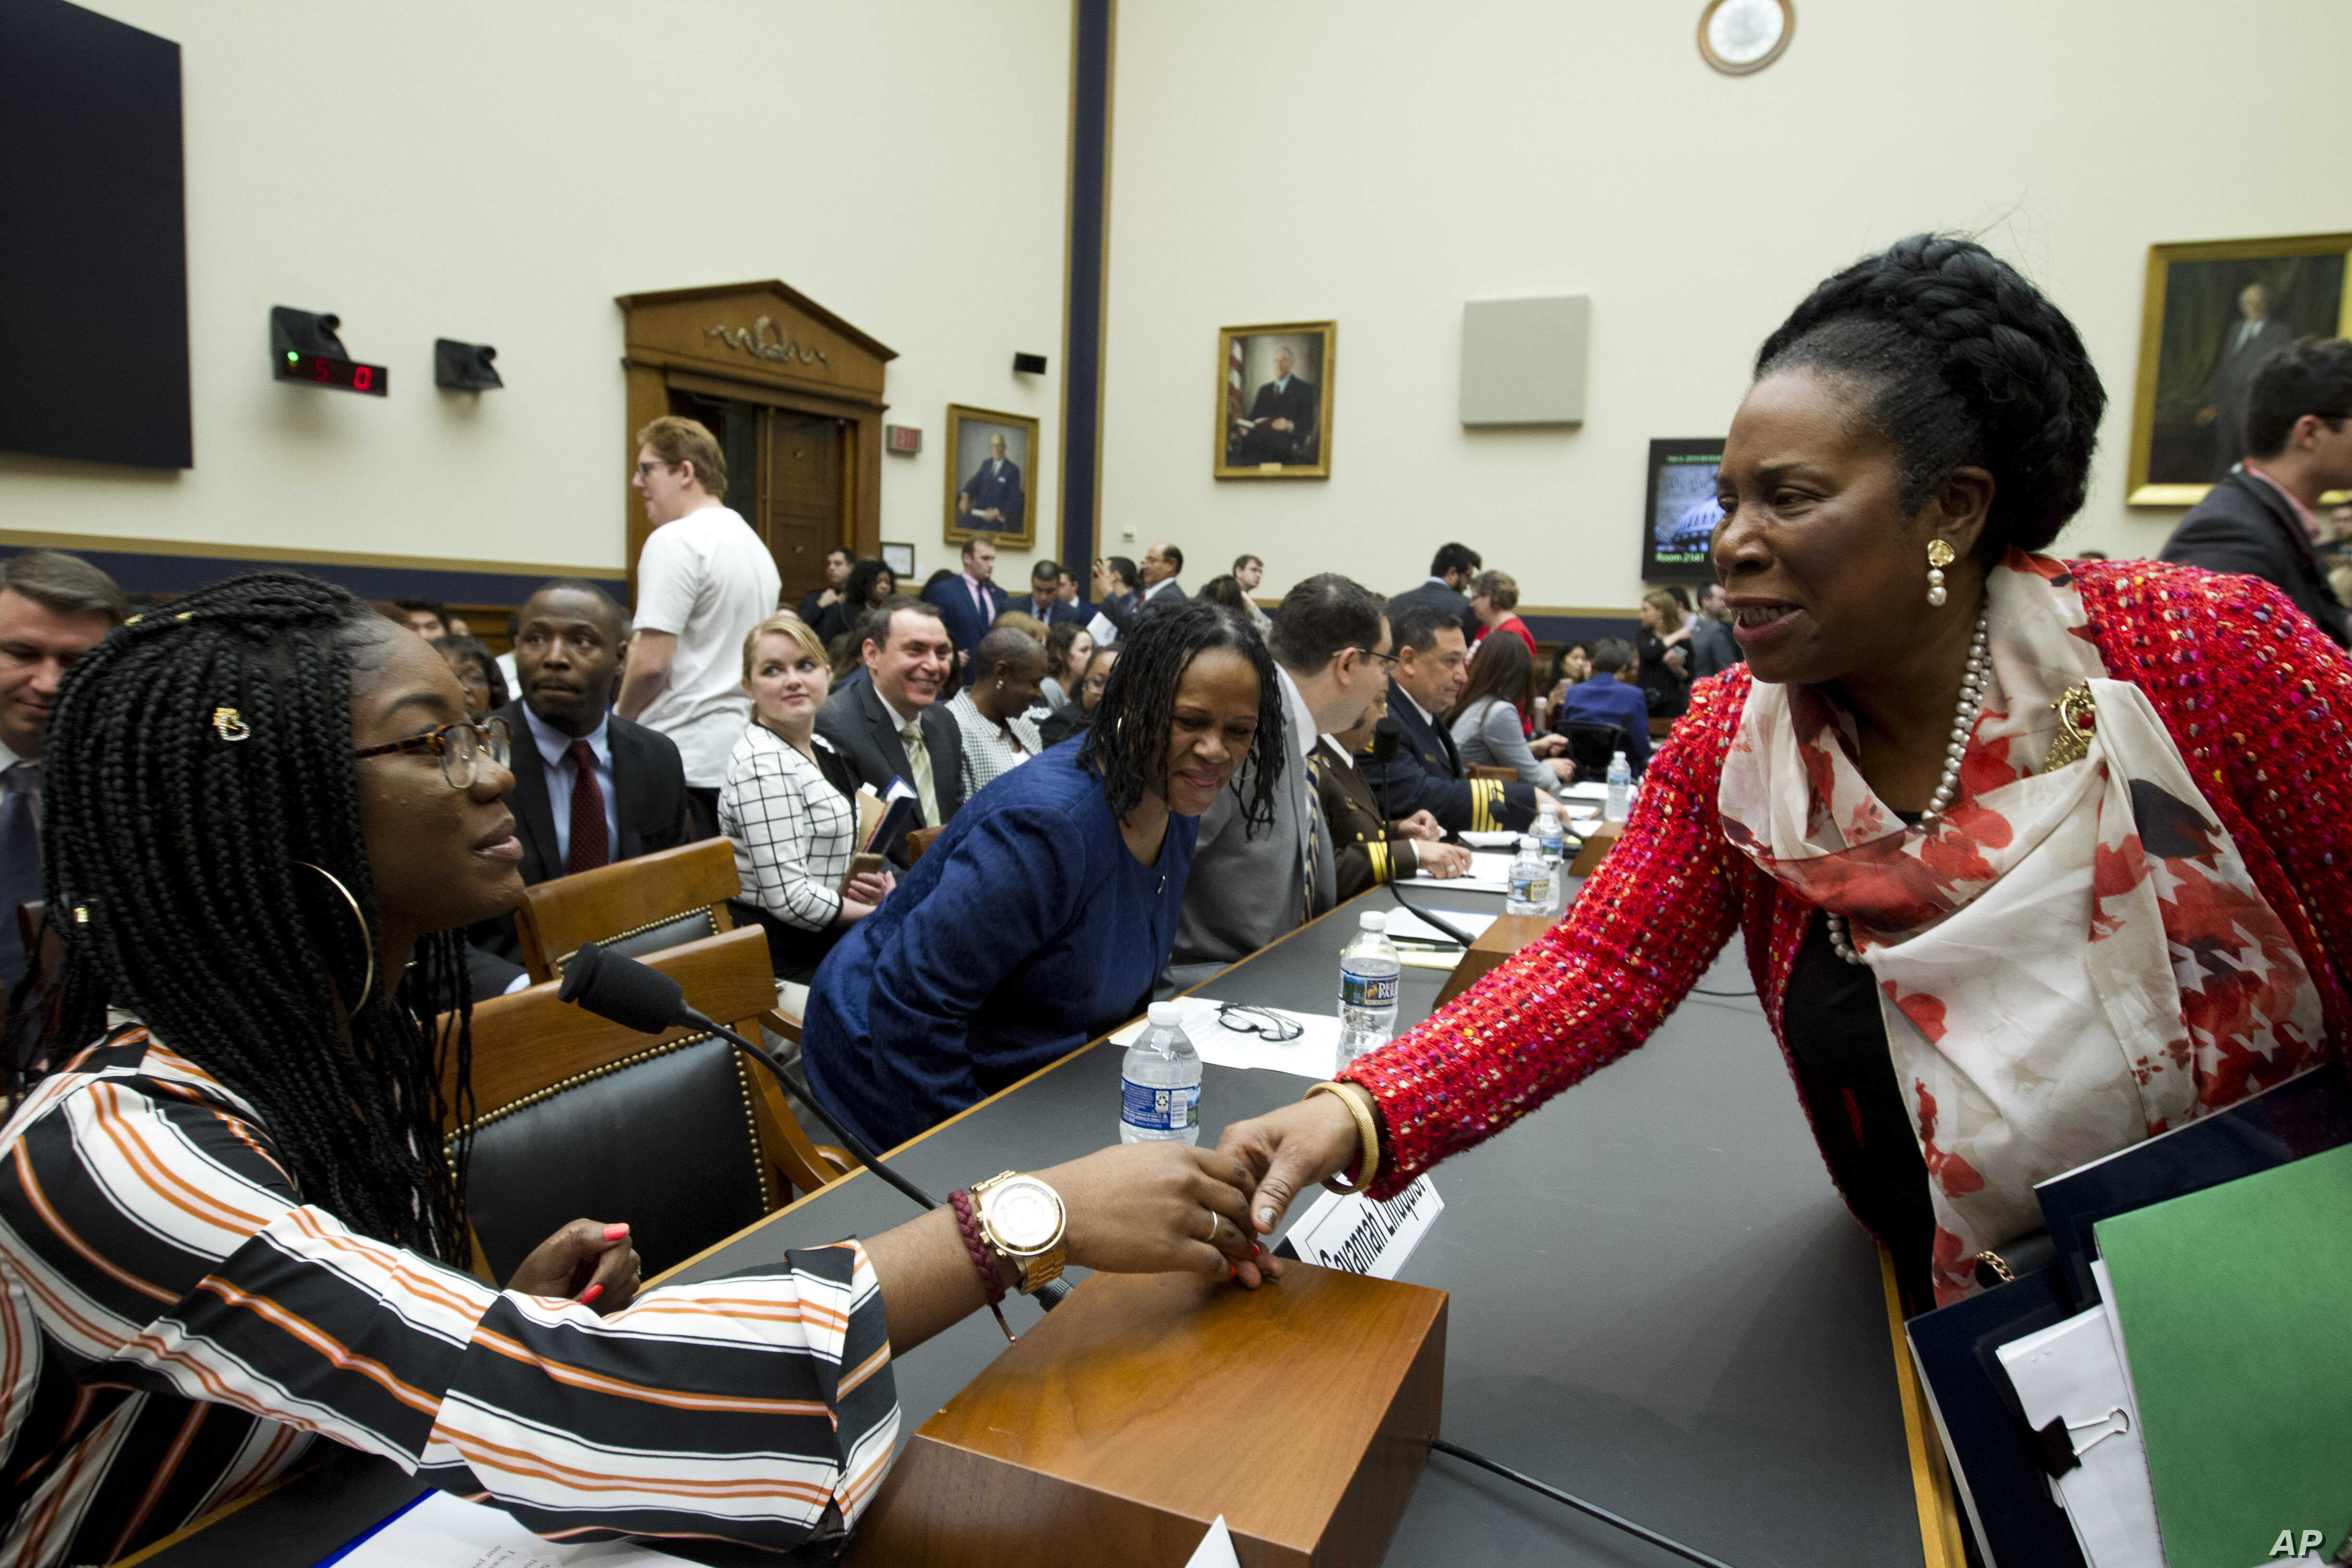 Rep. Sheila Jackson Lee D-Texas, shake hands with Marjory Stoneman Douglas High School senior Aalayah Eastmond, during a House Judiciary Committee hearing on gun violence, at Capitol Hill in Washington,  Feb. 6, 2019.